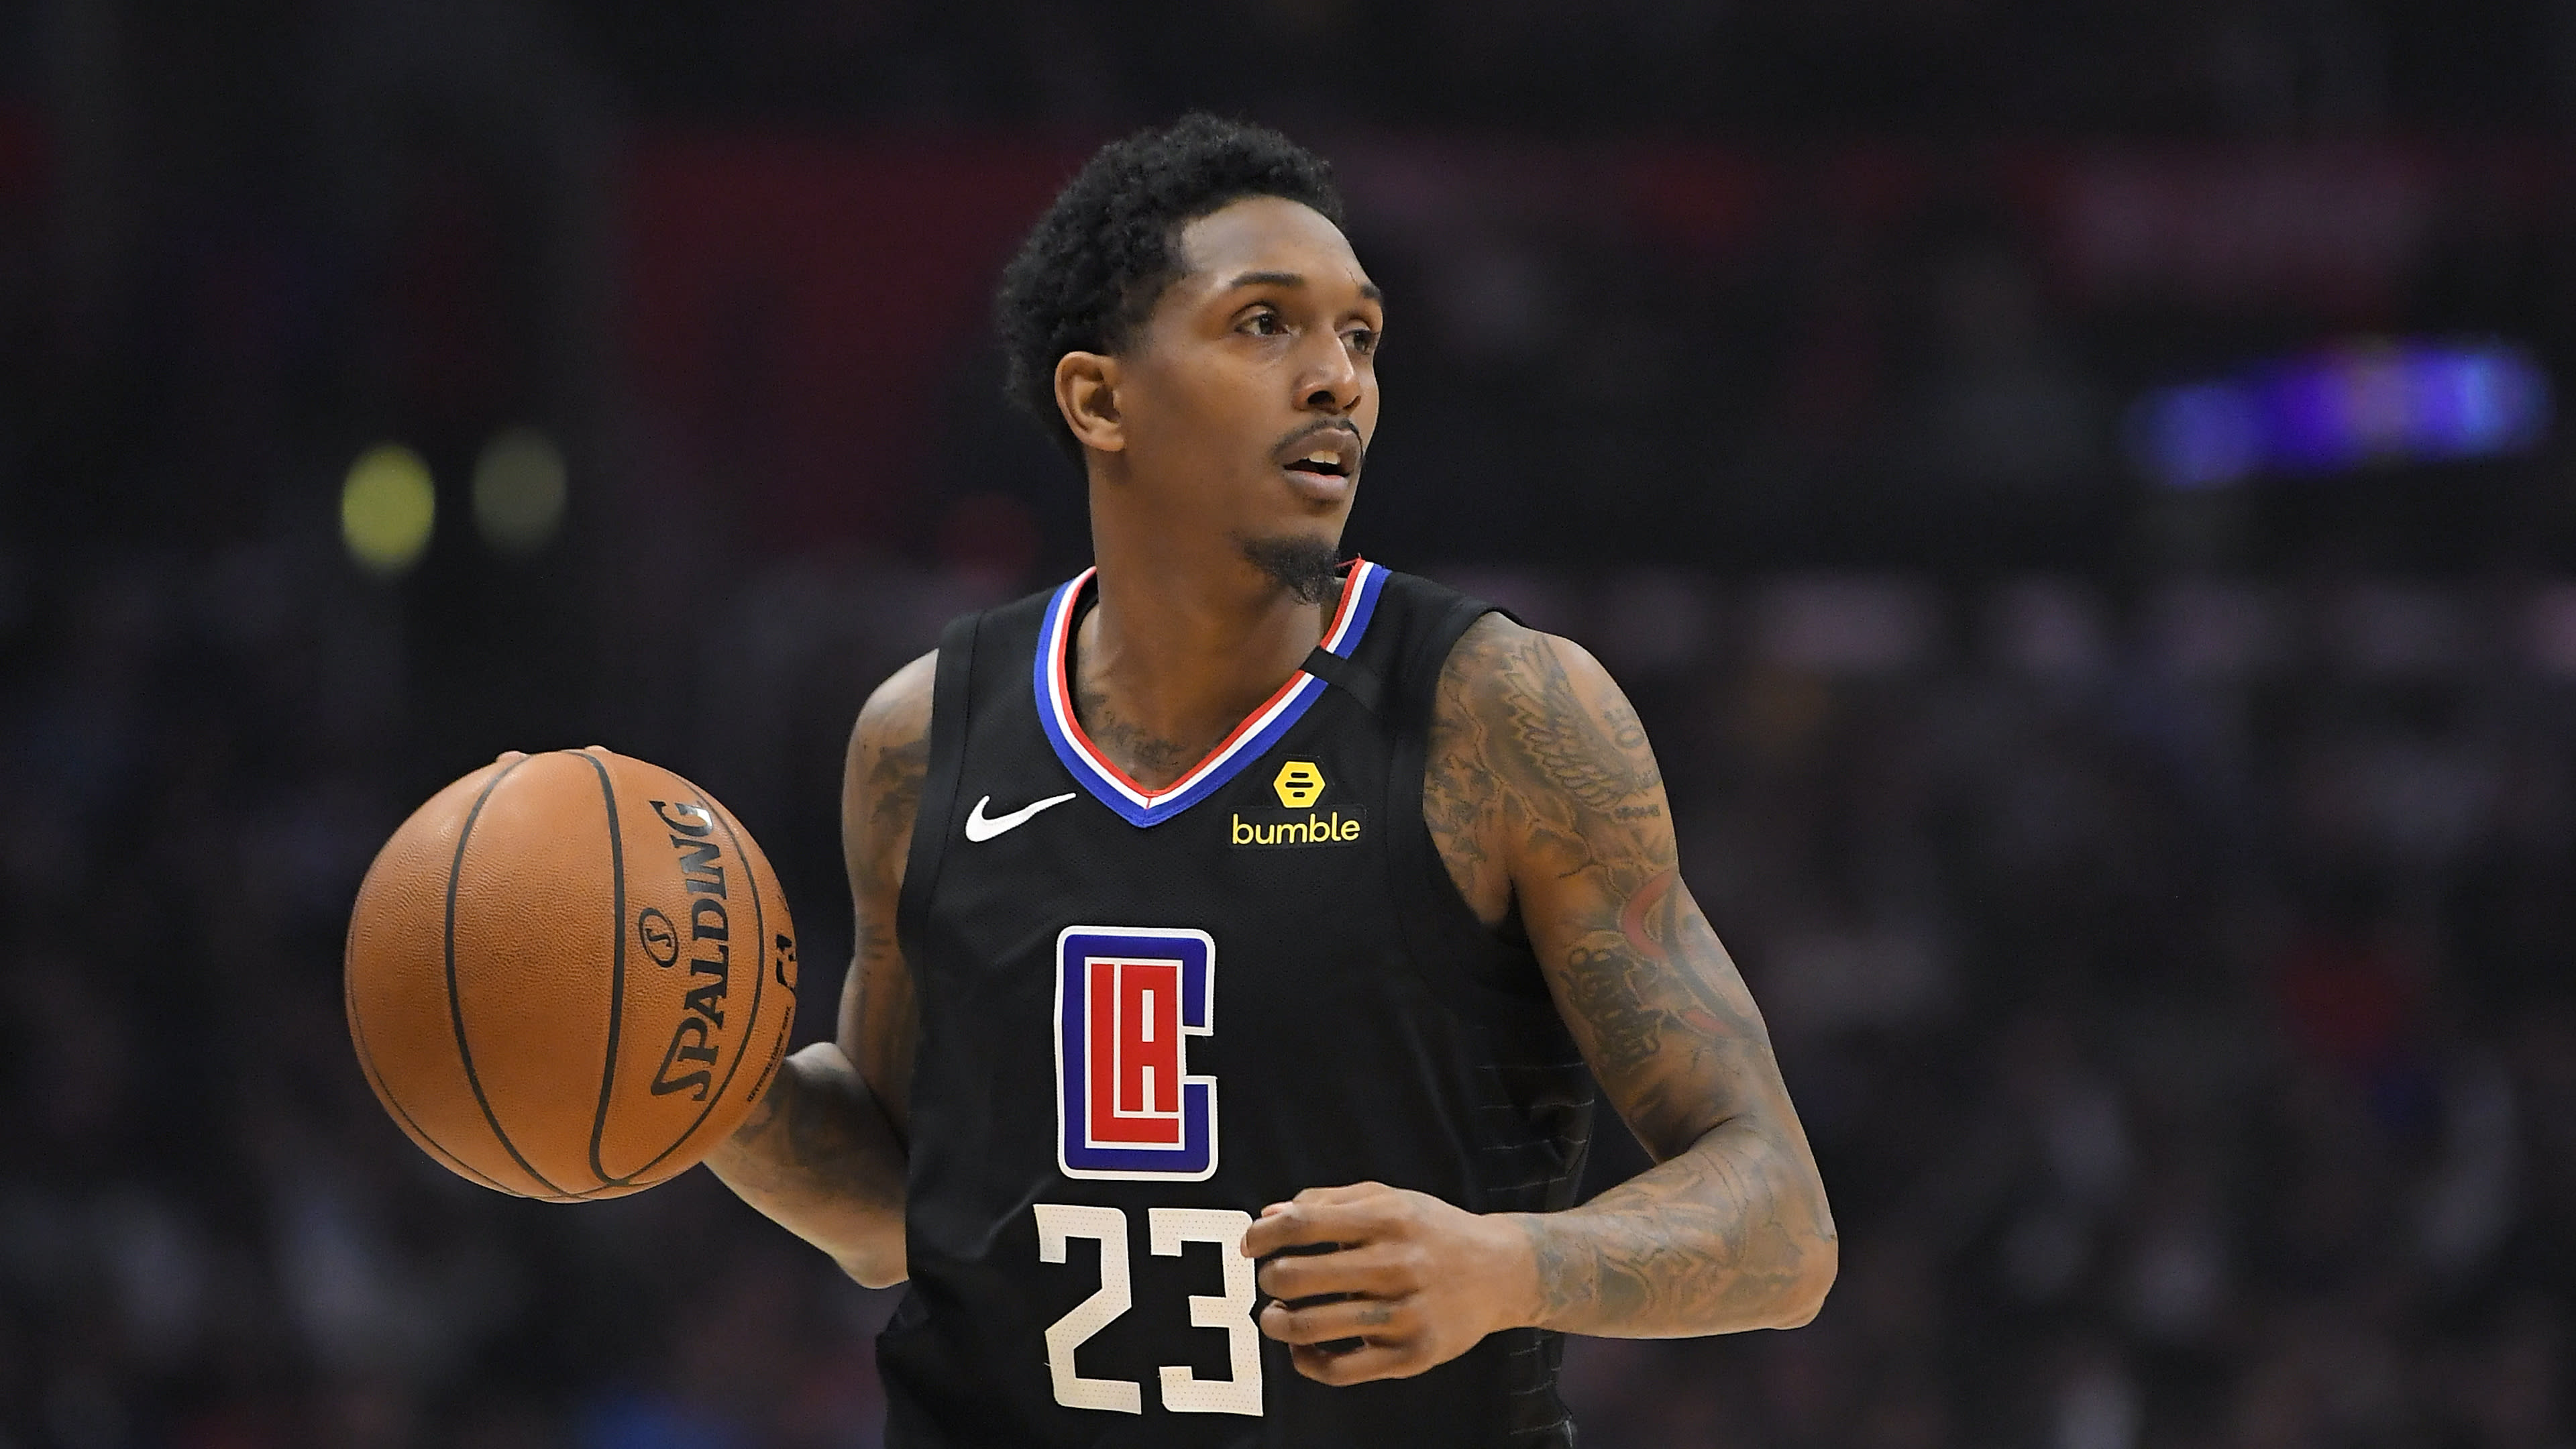 Rost grad Störning  NBA investigating Clippers PG Lou Williams' strip club trip